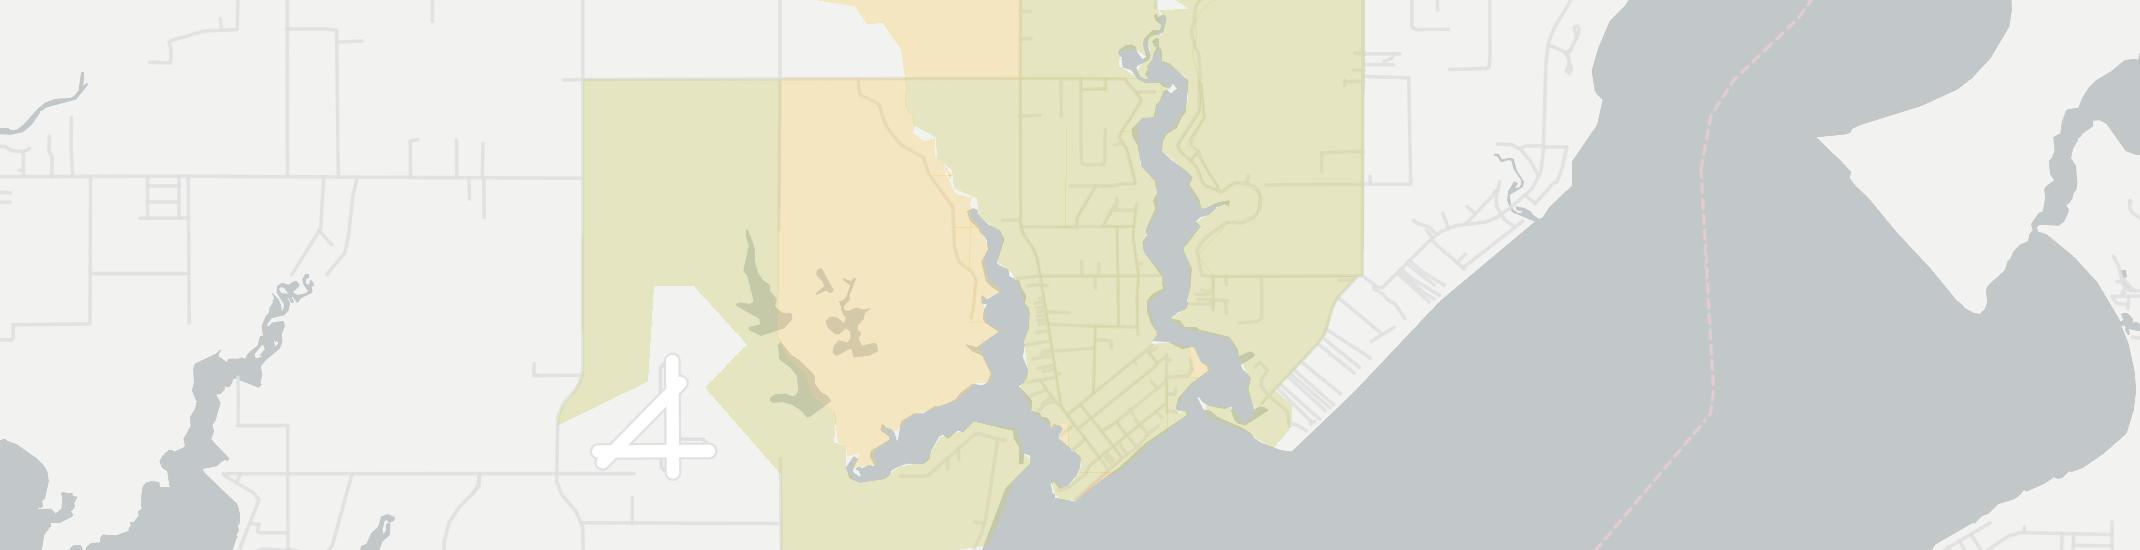 Perdido Beach Internet Competition Map. Click for interactive map.